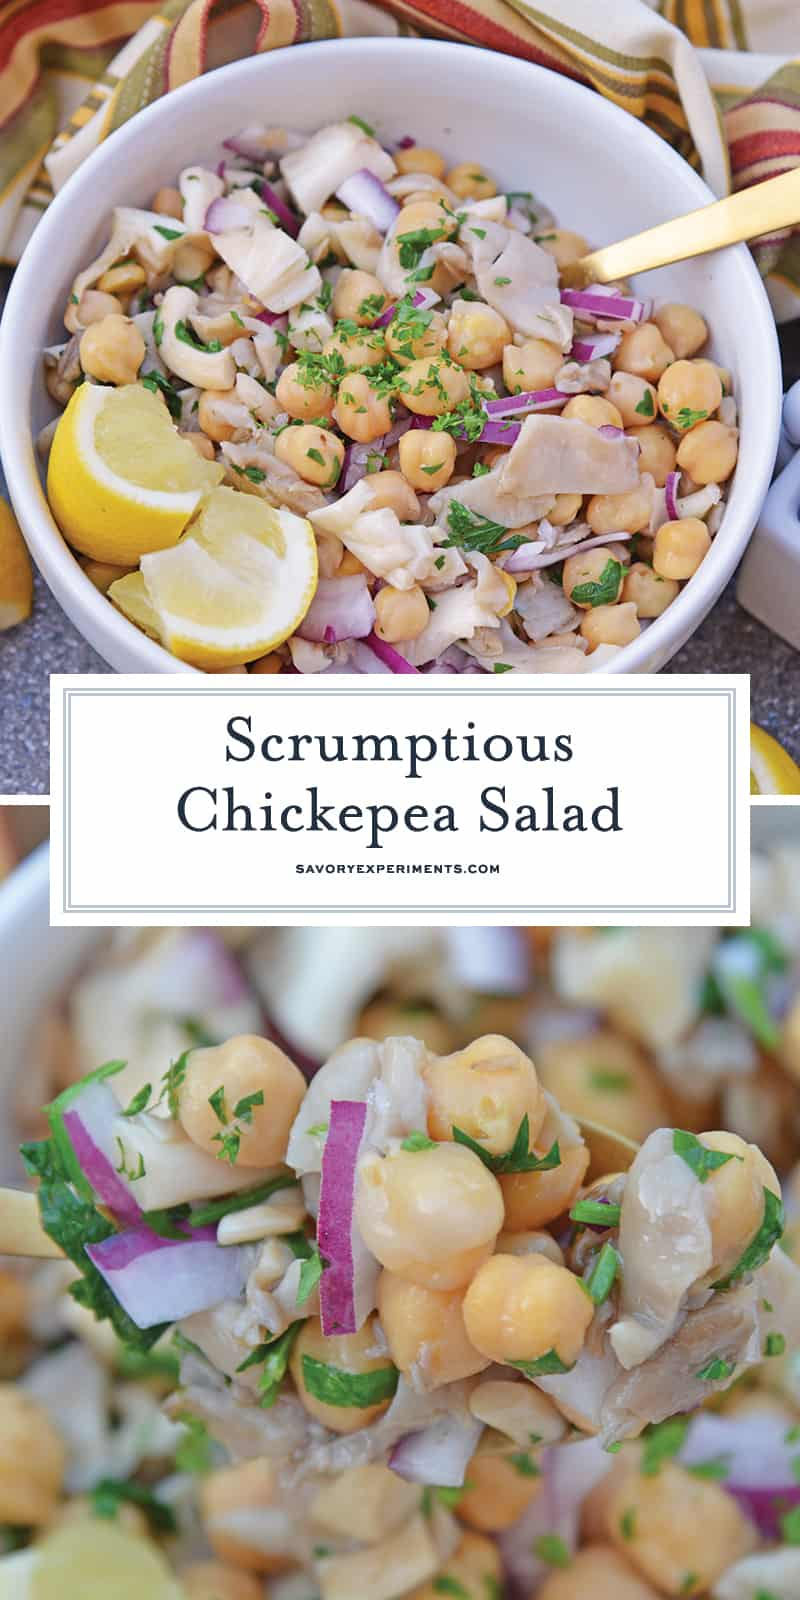 This Chickpea Salad is full of flavor from mushrooms, lemon and truffle oil. The perfect side dish for any meal and ready in only 20 minutes! #chickpeasalad #chickpearecipes www.savoryexperiments.com